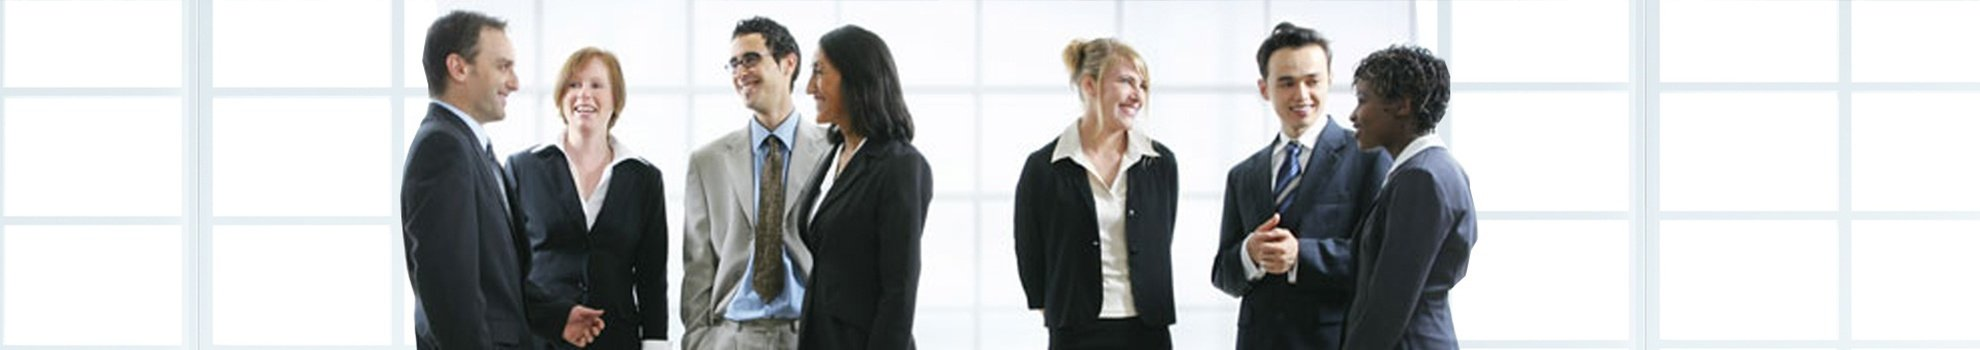 IPS_About_Careers_Banner